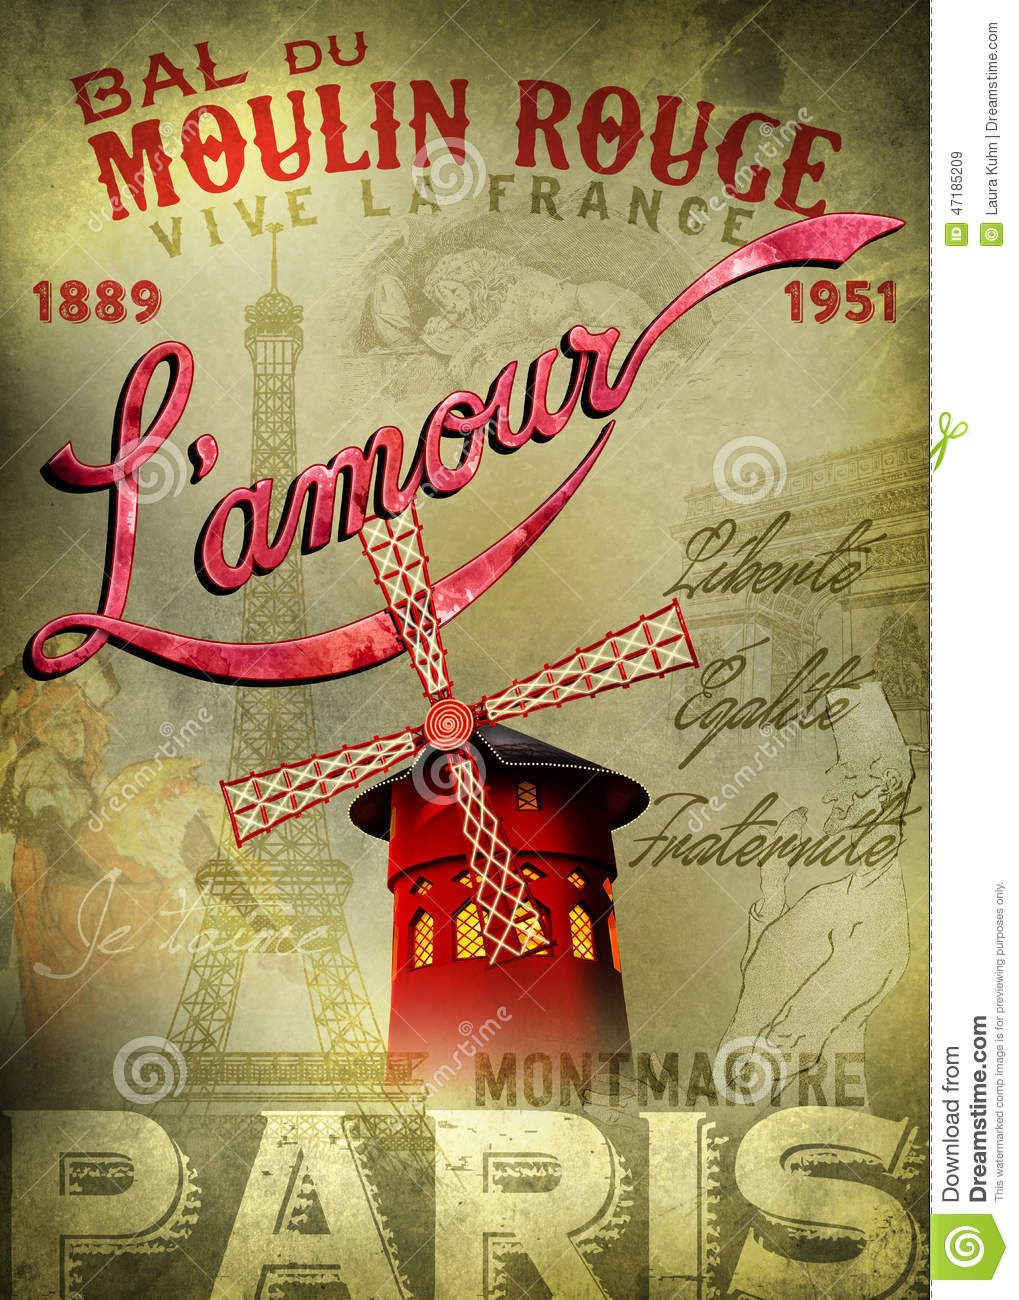 moulin-rouge-l-amour-poster-inspired-lautrec-original ...